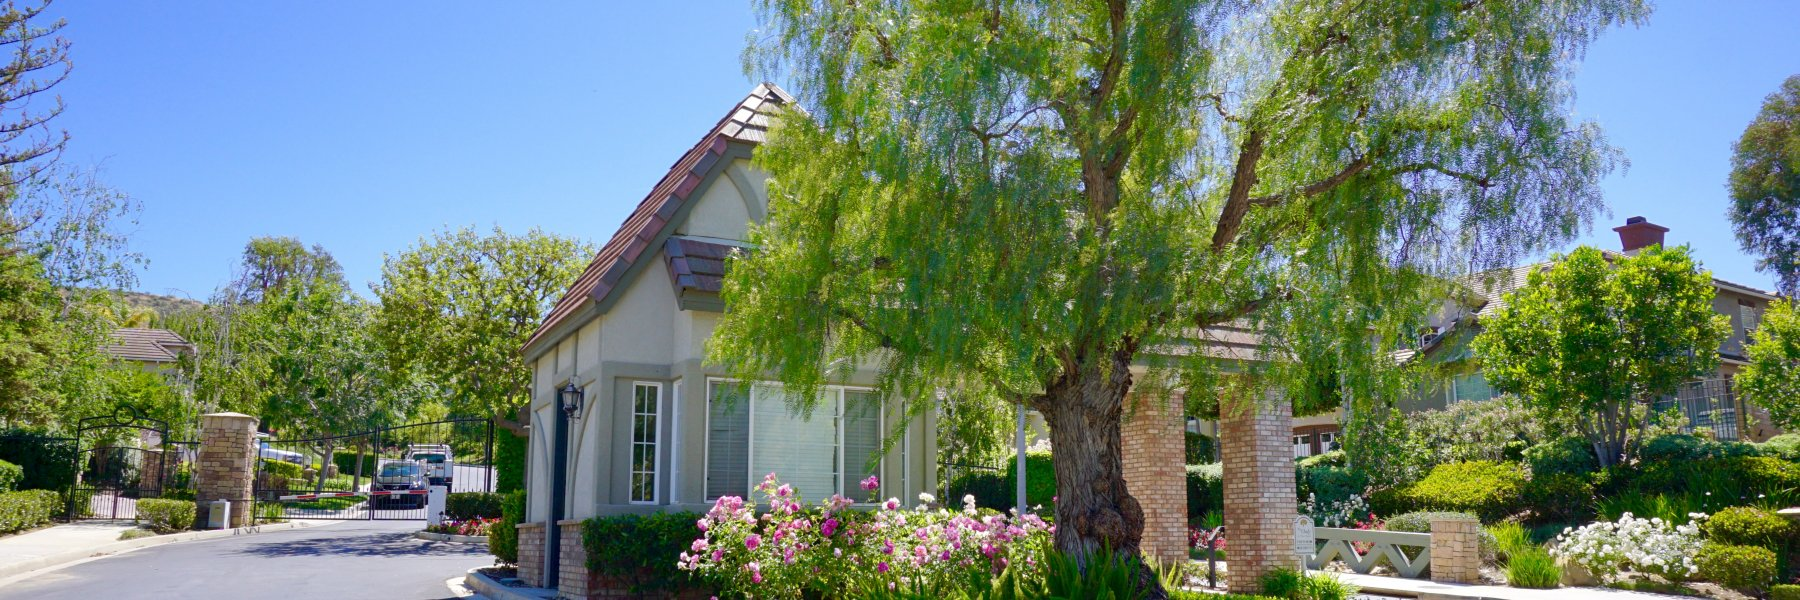 The Oaks is a community of homes in Simi Valley California